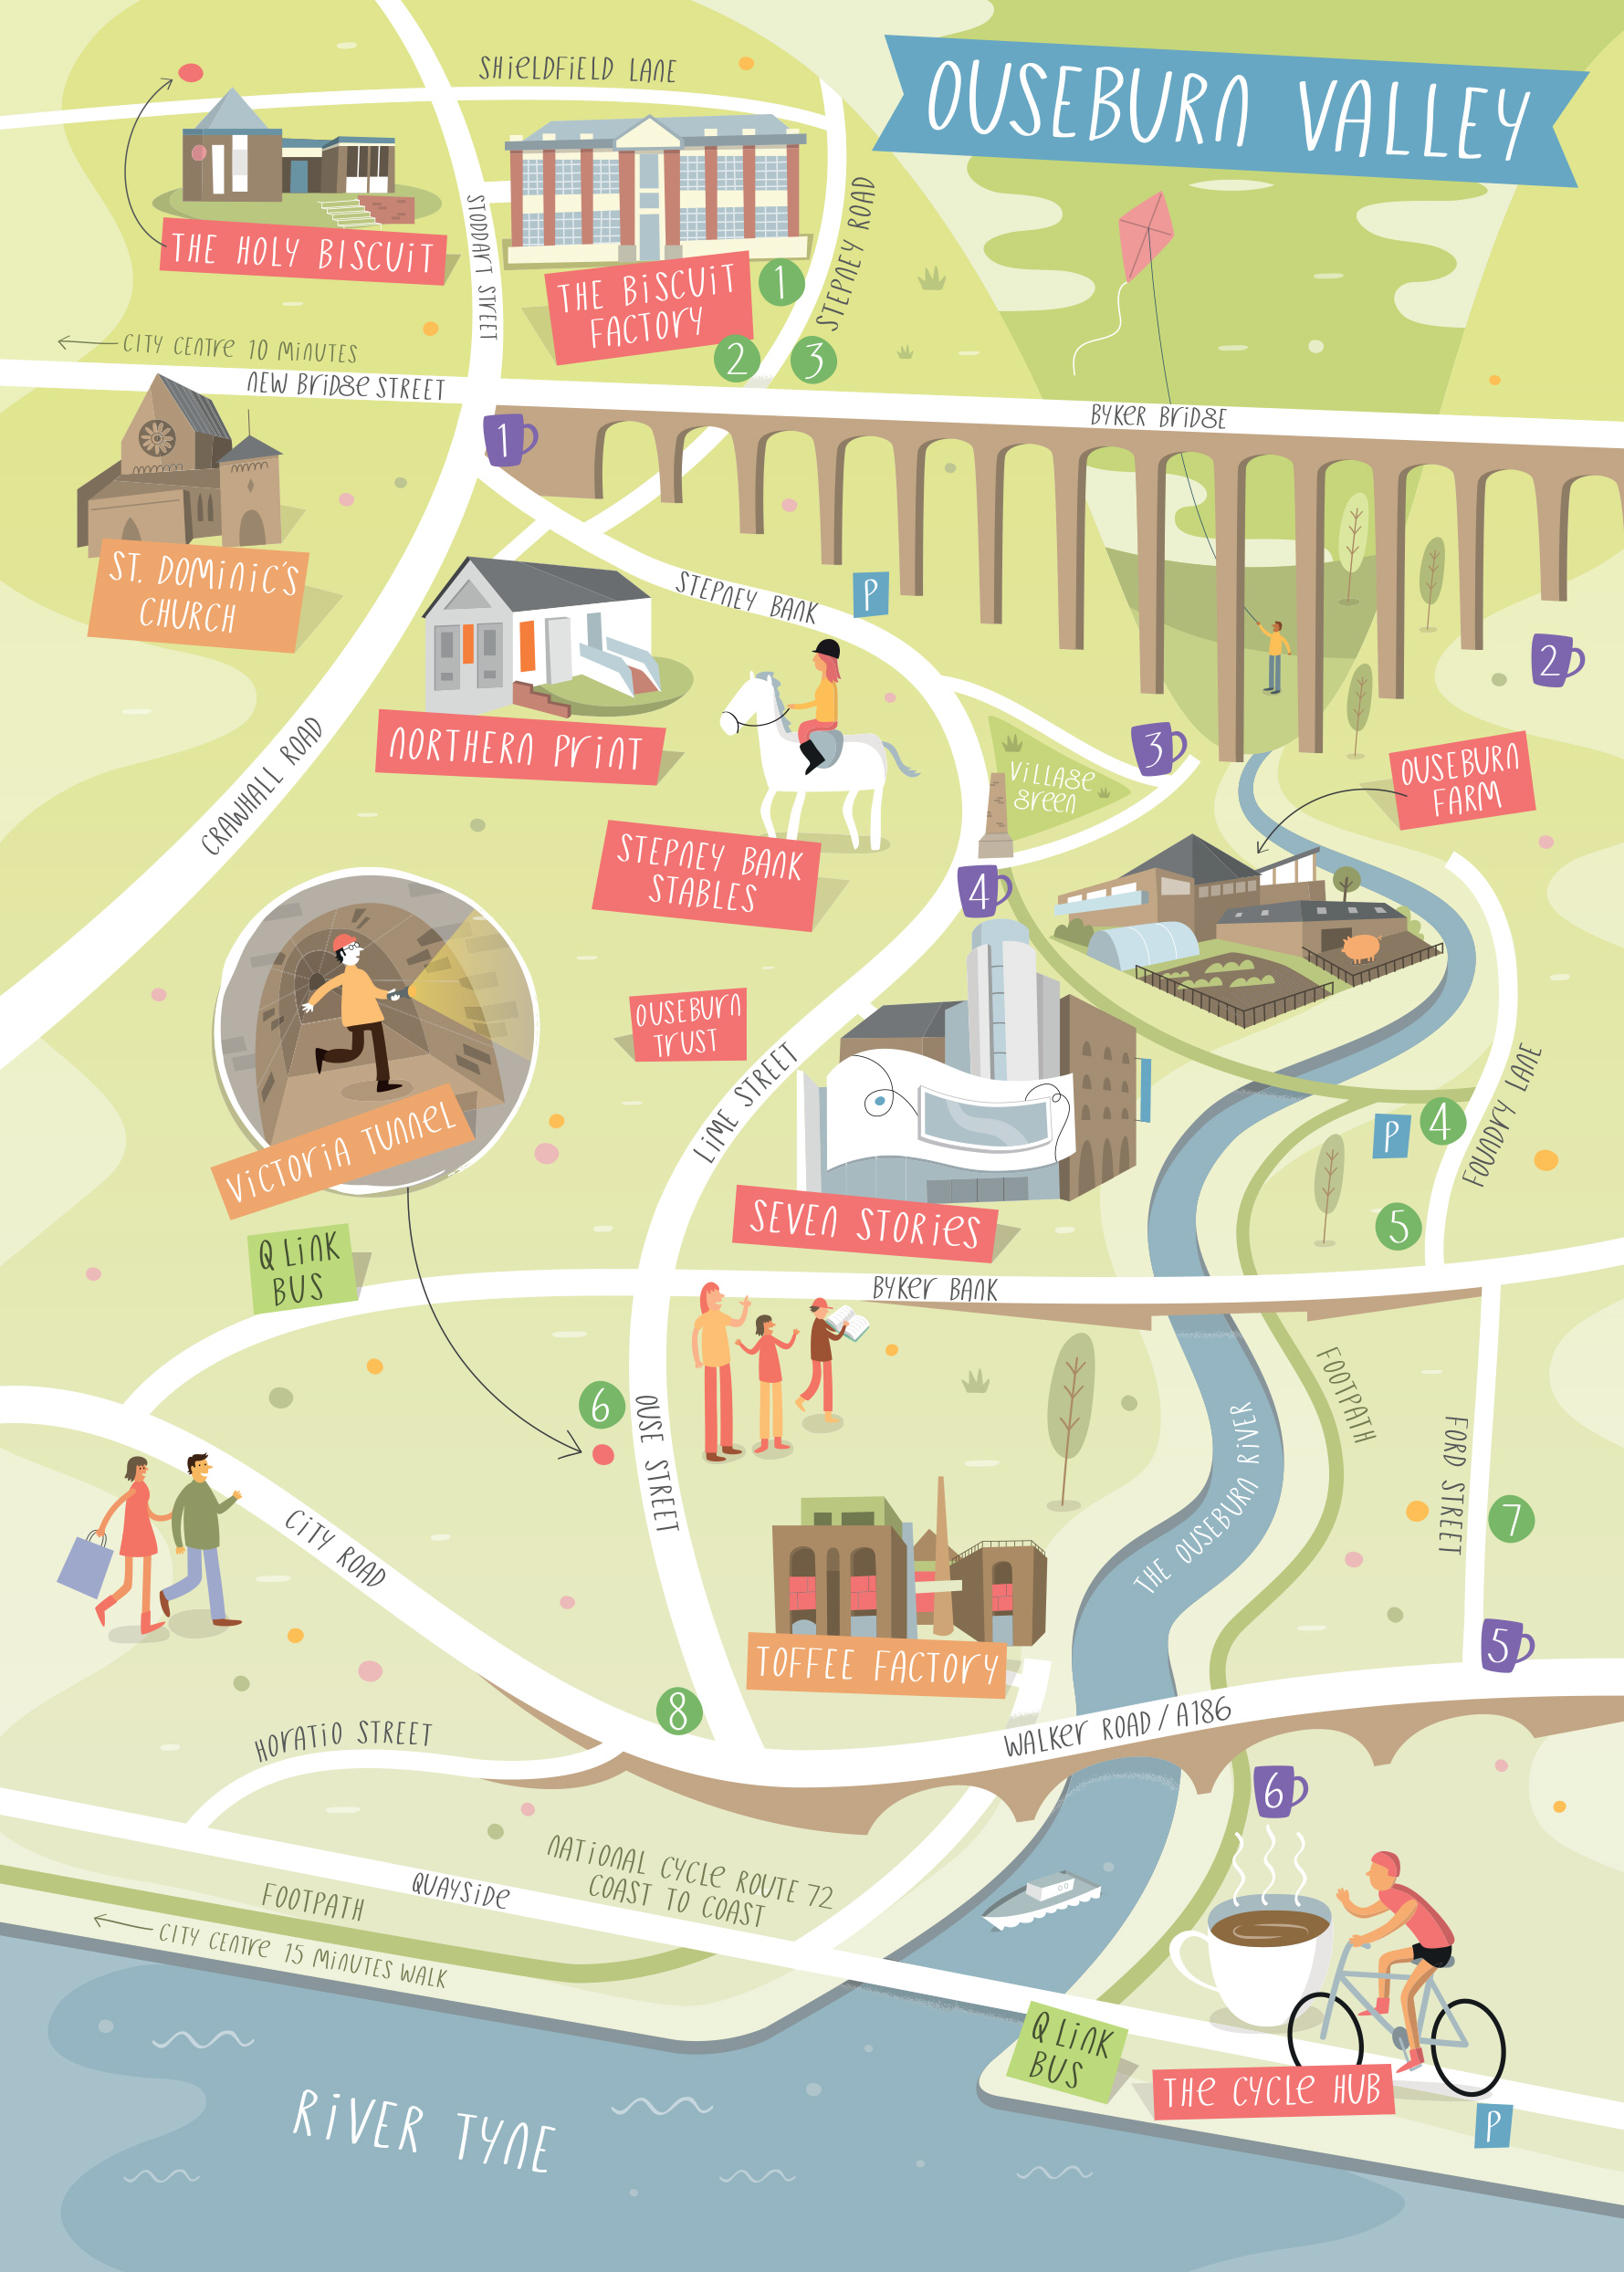 Ouseburn: A Creative Guide to a Creative Valley | Toffee Factory